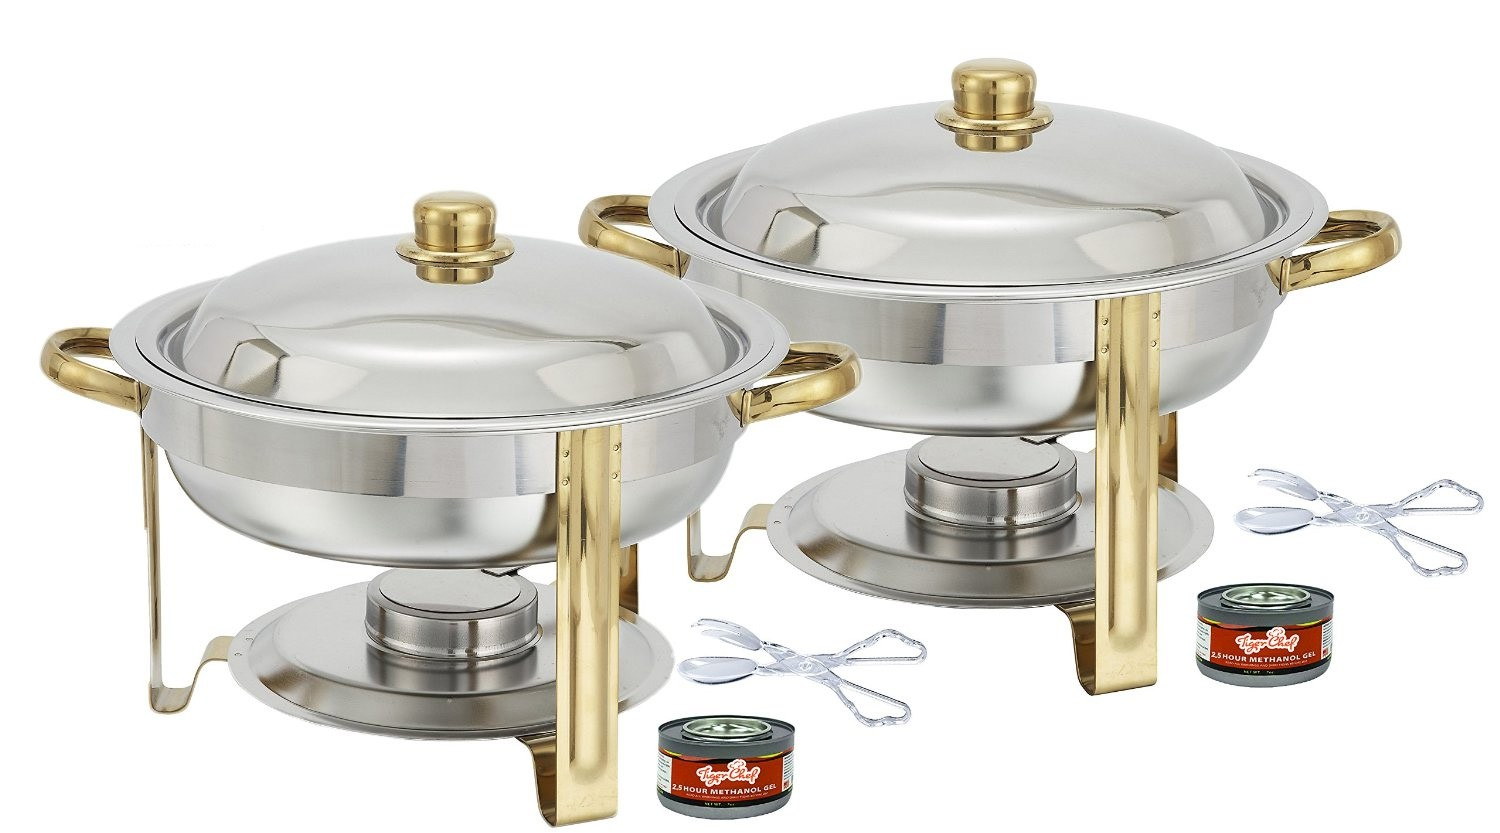 TigerChef 4 Qt. Round Gold Accented Chafing Dish, with Free Chafing Gel and Tongs - Set of 2